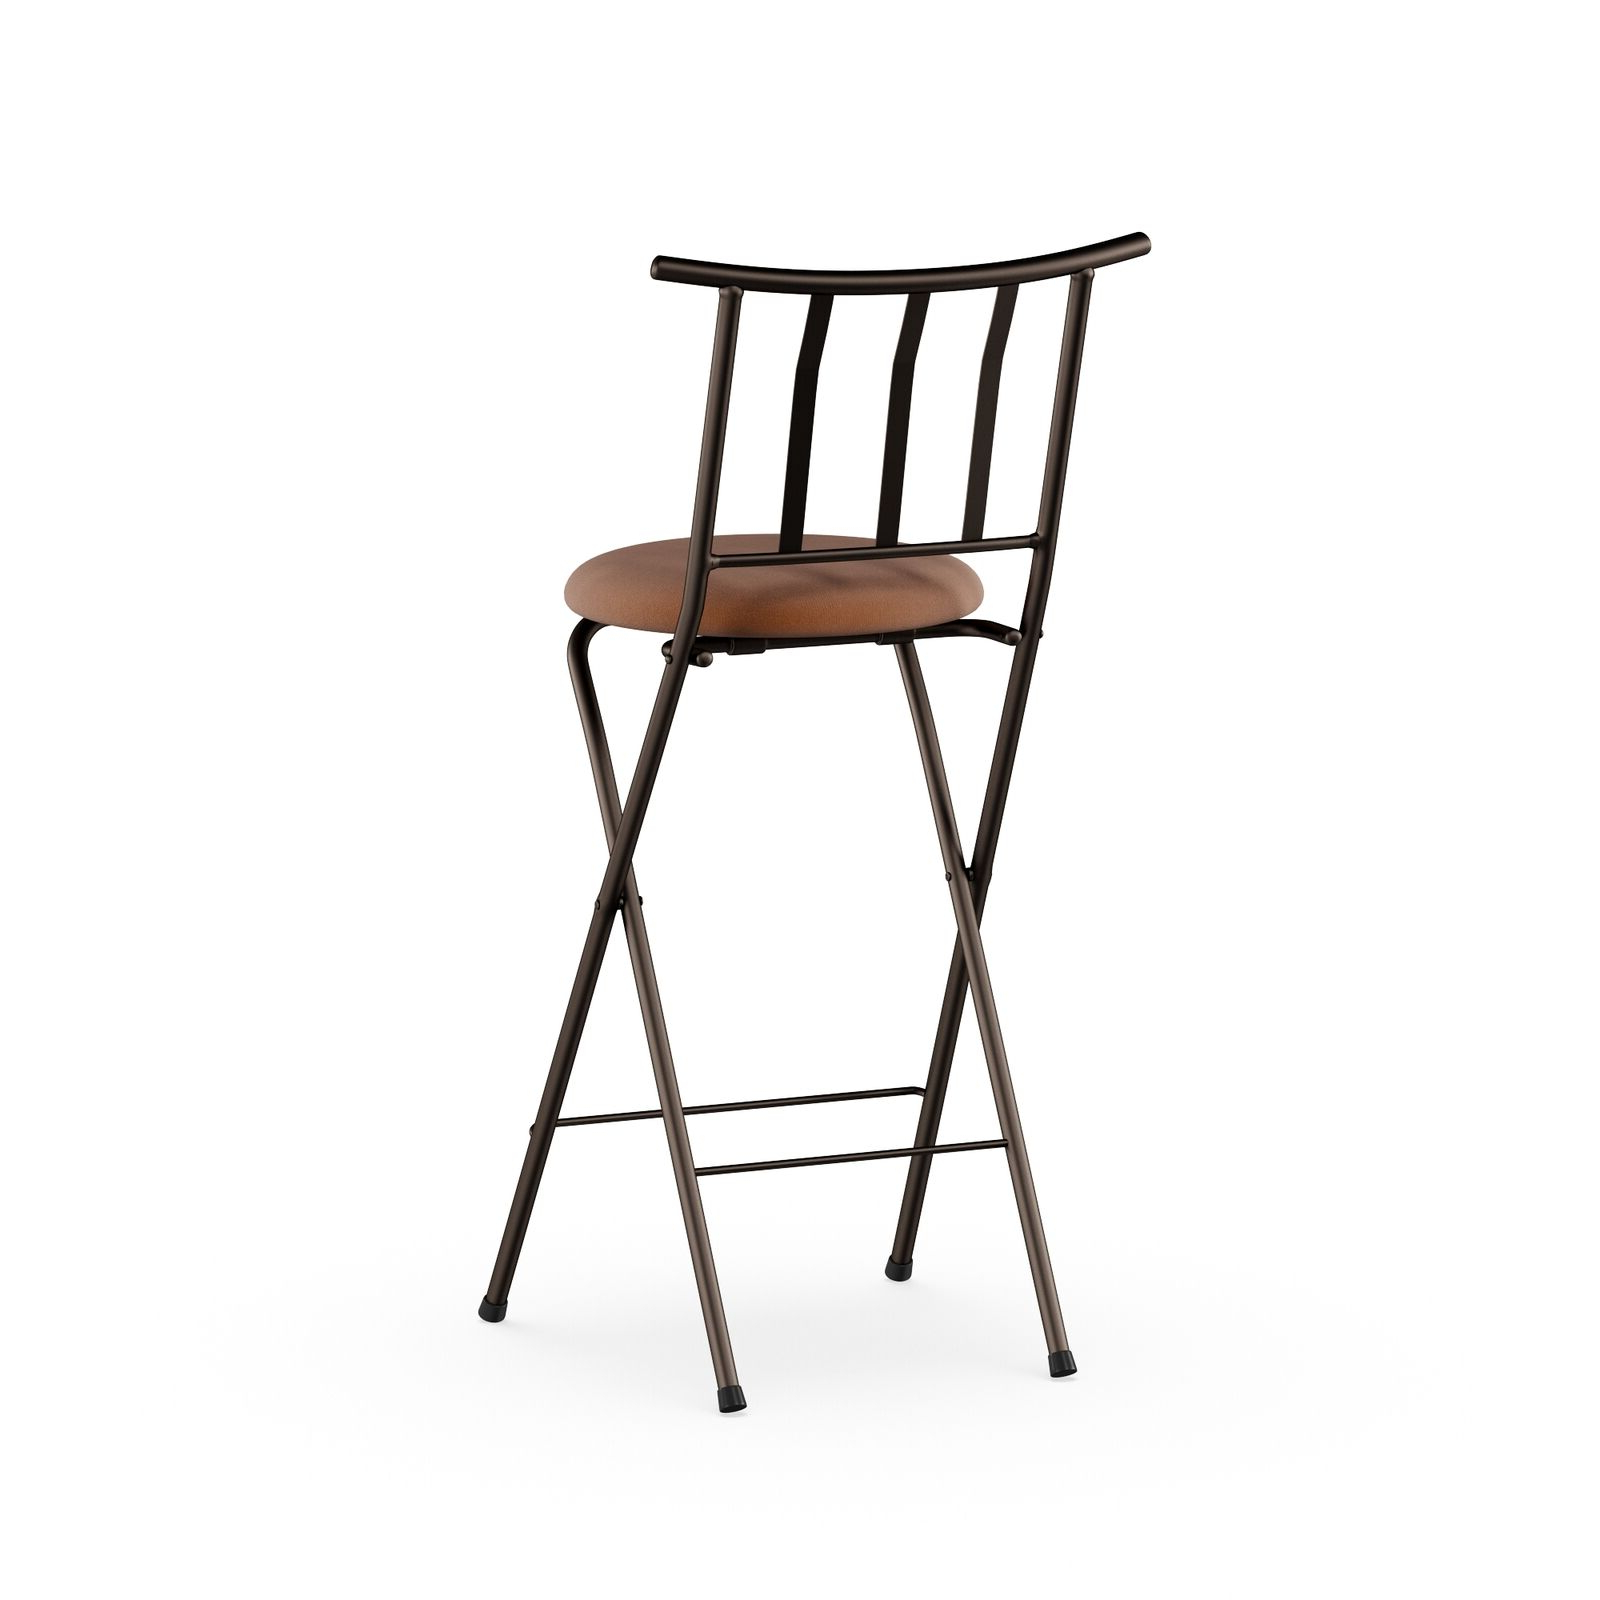 "Tillia Ceramic Garden Stools Pertaining To Favorite Mainstays Slat Back Folding 30"" Bronze Bar Stool Multiple Colors (View 11 of 30)"